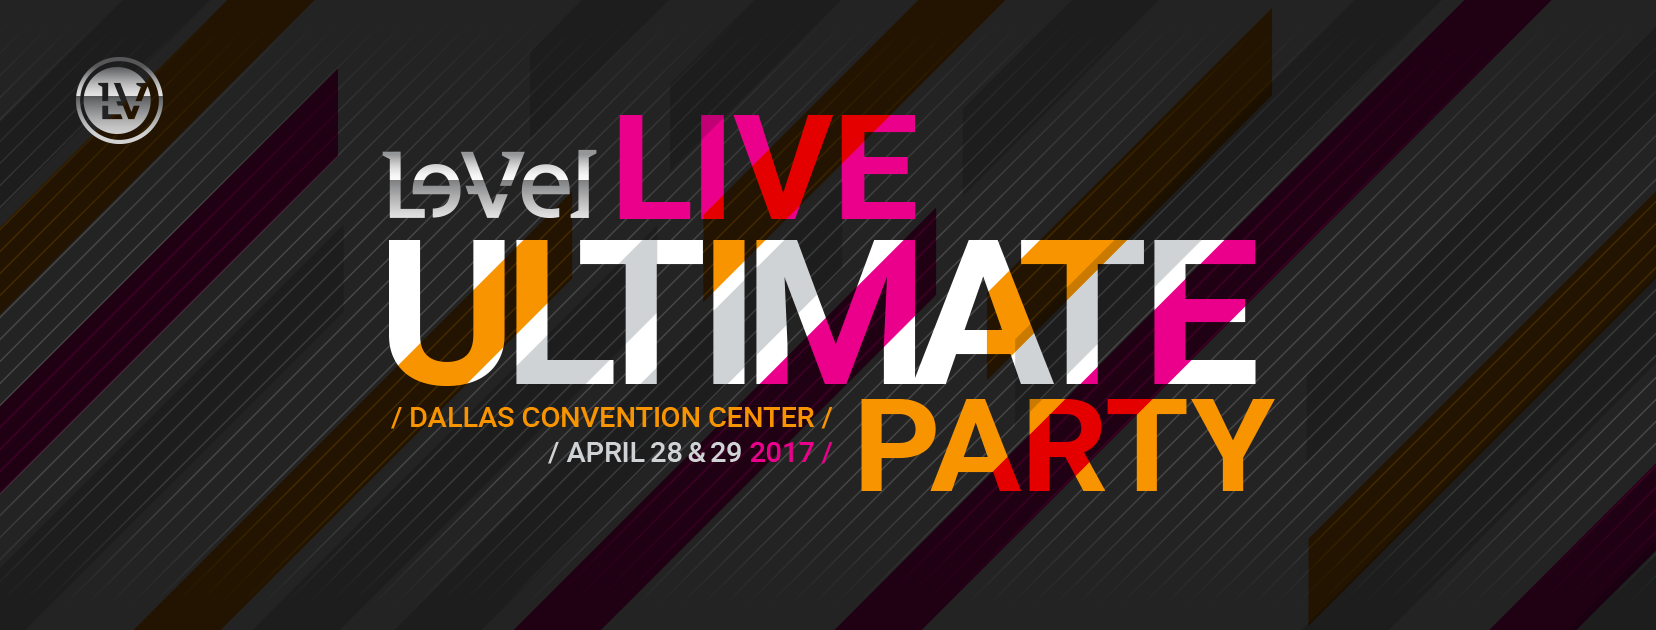 Join us at the Le-Vel Live Ultimate Party!